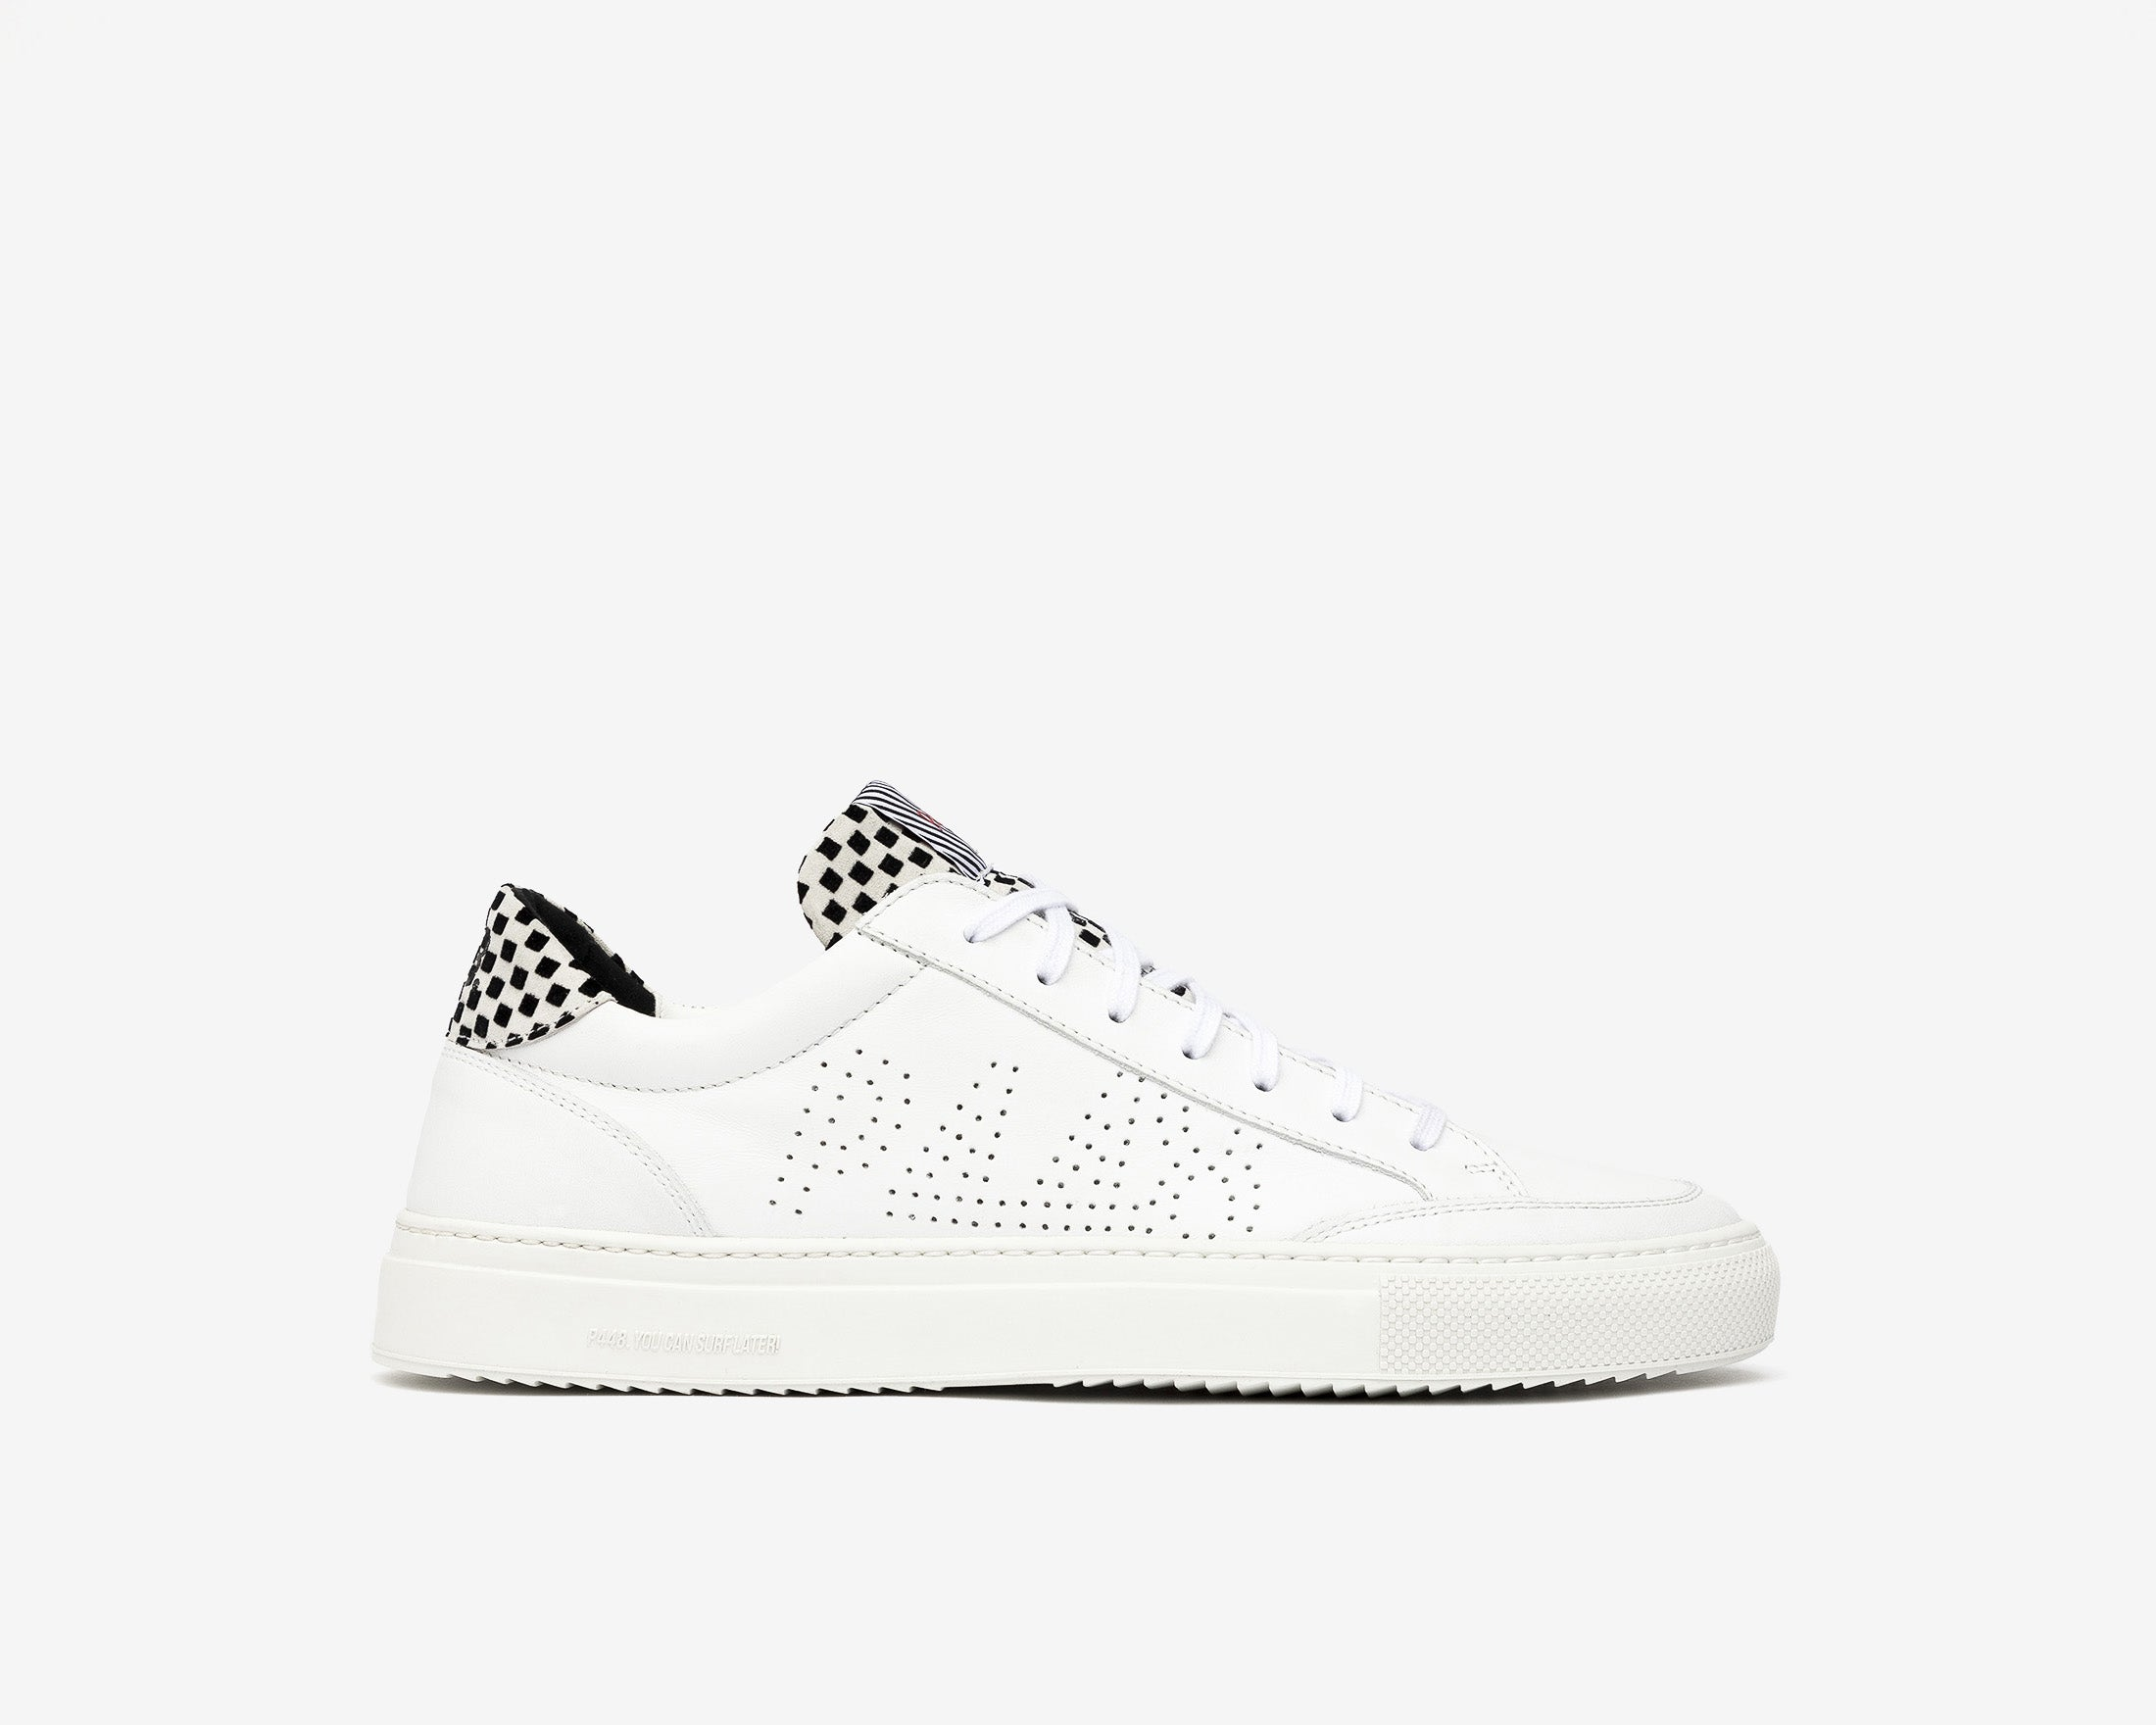 Soho Pull-on Sneaker in White Check - Profile